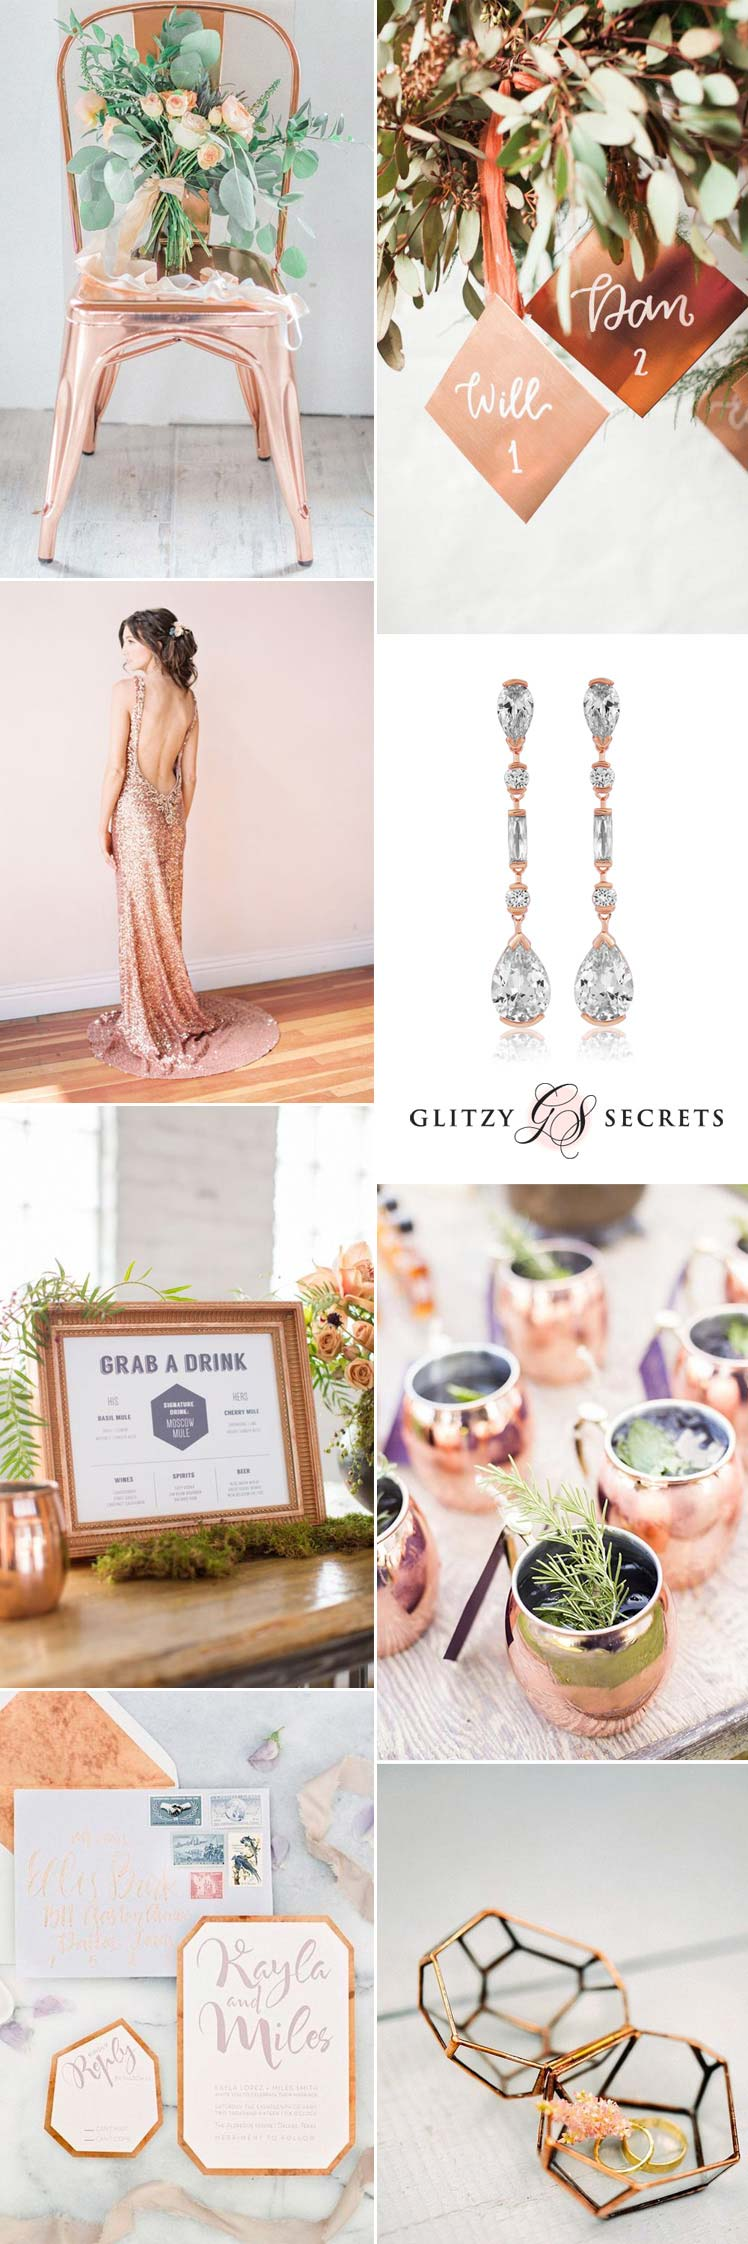 Stunning copper wedding theme ideas